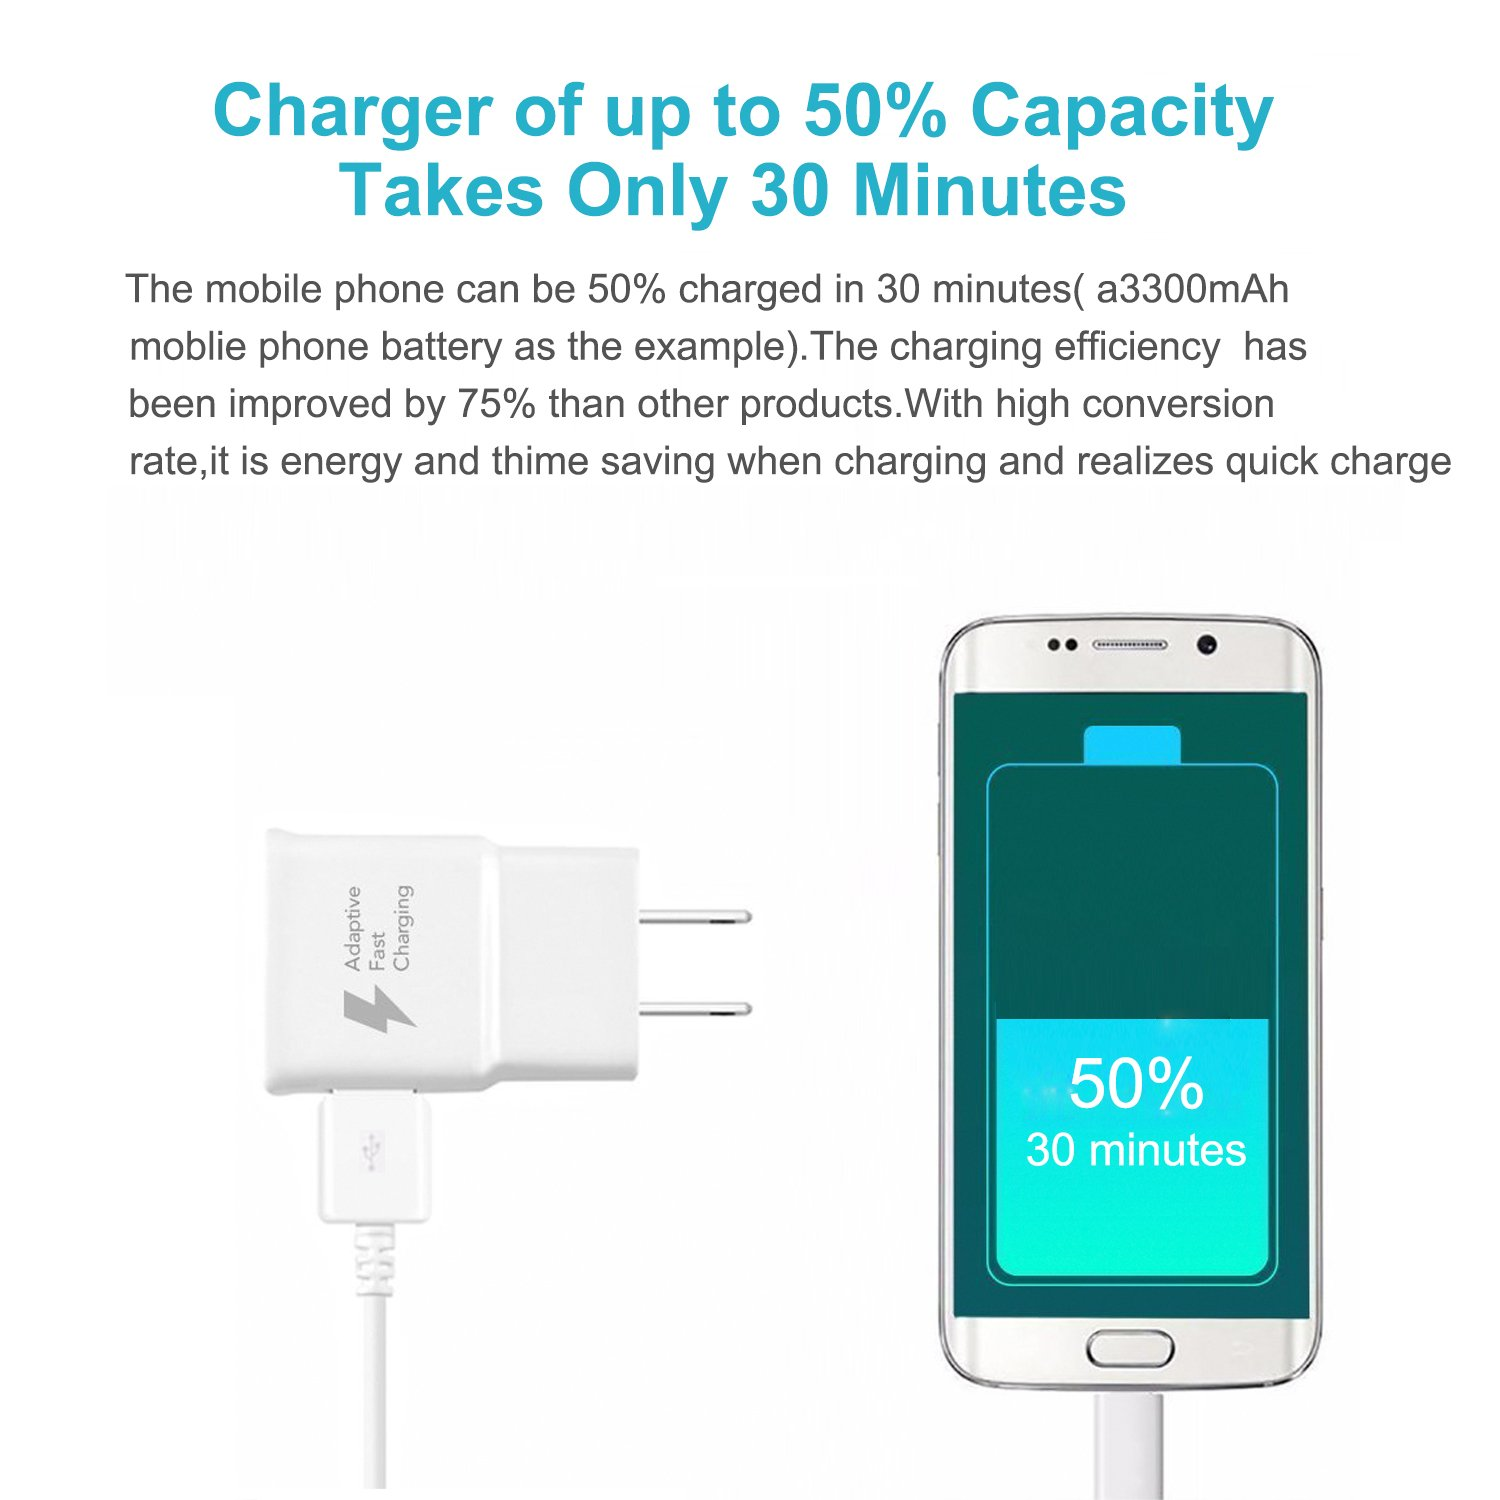 MBLAI Fast Charge Adaptive Fast Charger Kit for Samsung Galaxy S7/S7 Edge/S6/Note5/4 /S3,MBLAI USB 2.0 Fast Charging Kit True Digital Adaptive Fast Charging (Wall Charger + Micro USB Cable) by MBLAI (Image #4)